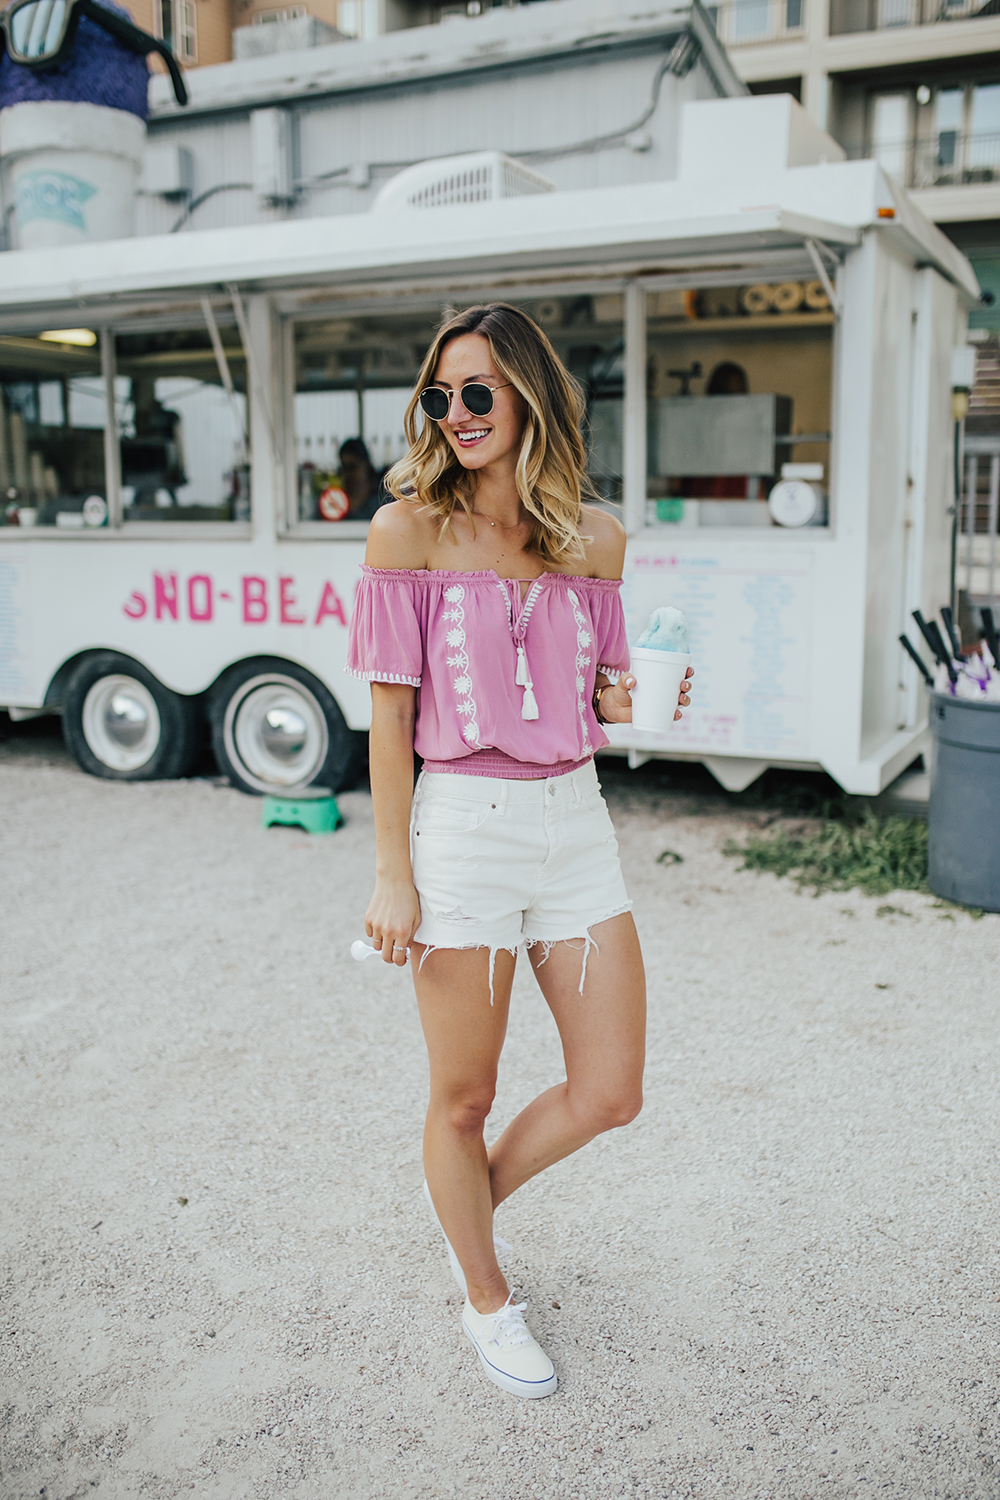 livvyland-blog-olivia-watson-austin-texas-fashion-blogger-pacsun-mom-shorts-off-white-vans-sneakers-sno-beach-snow-cone-4